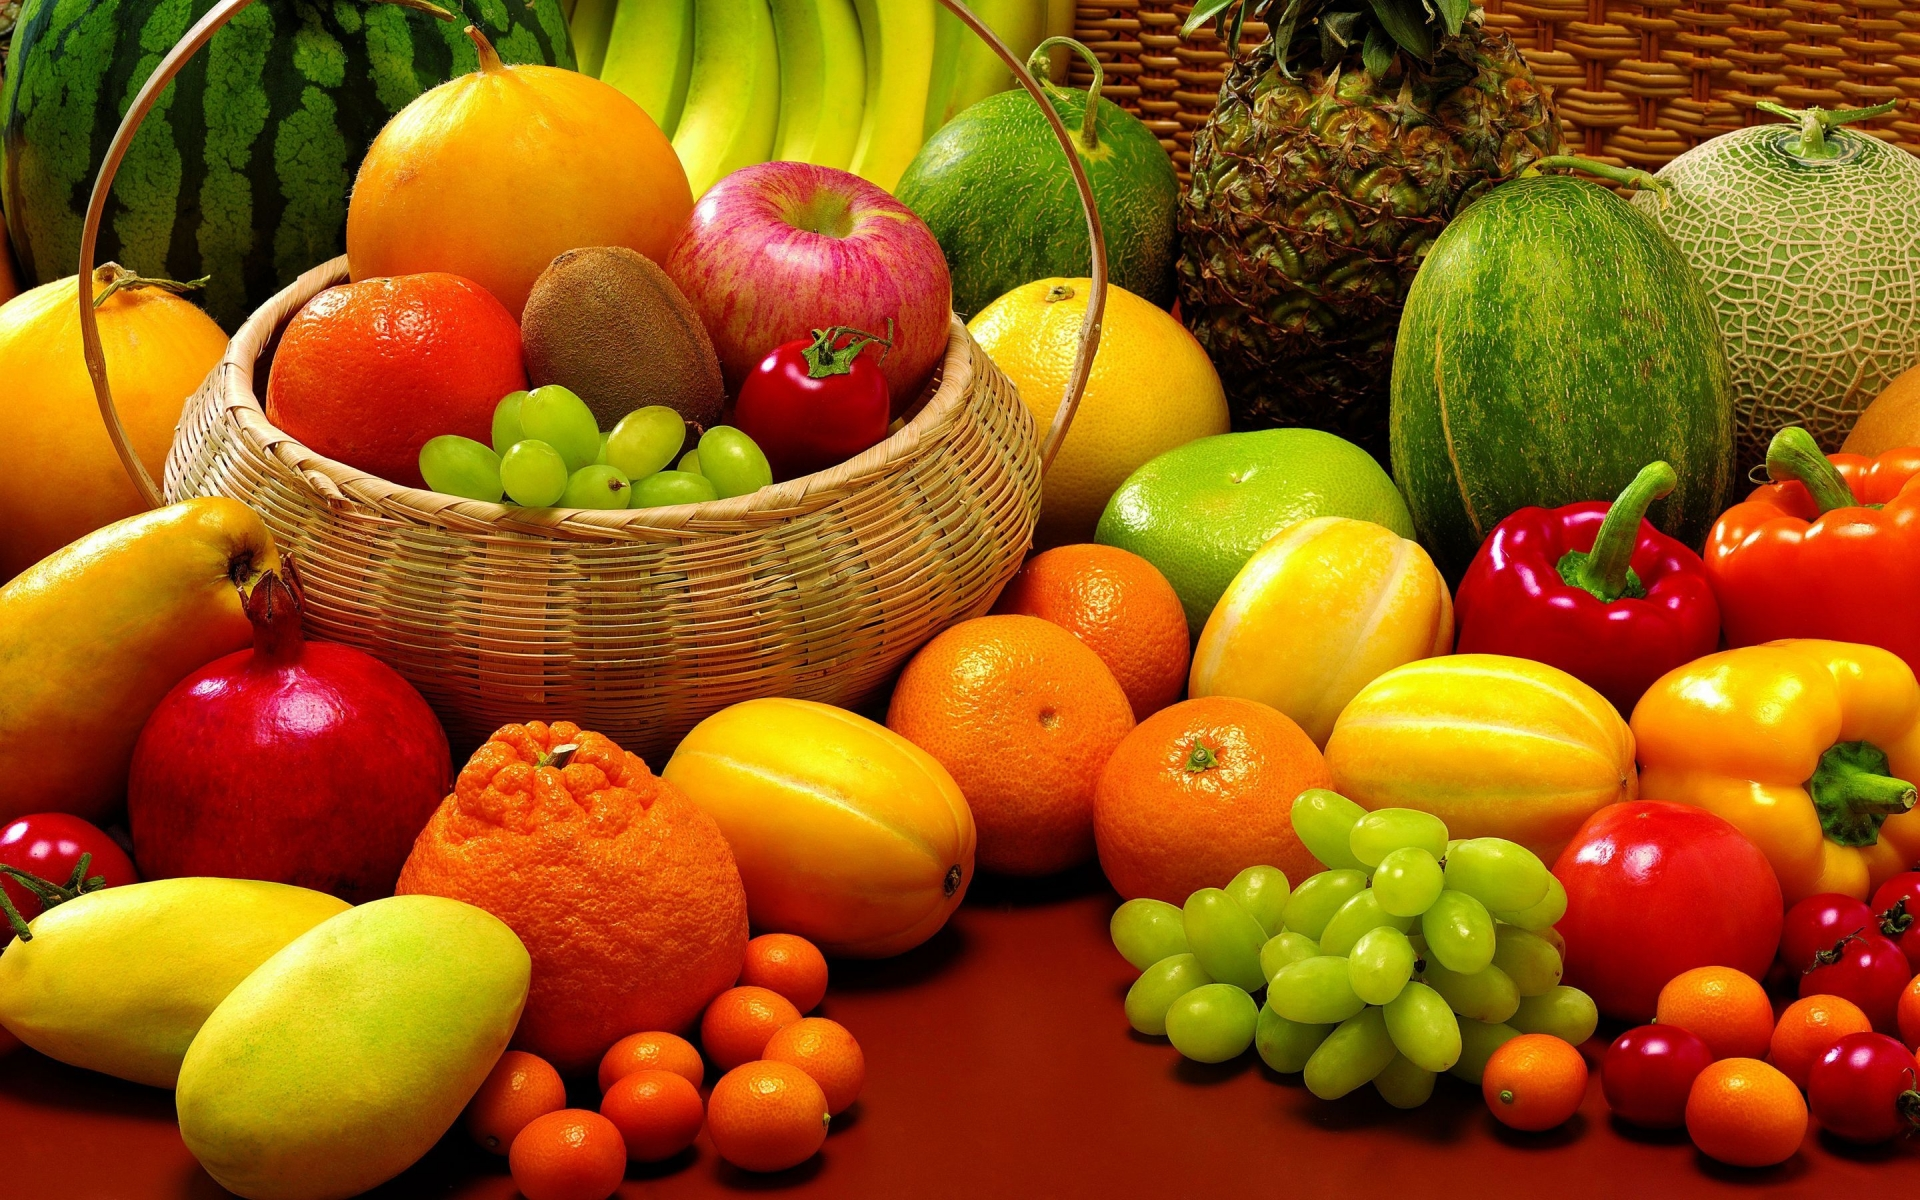 Fruits and Veggies for 1920 x 1200 widescreen resolution